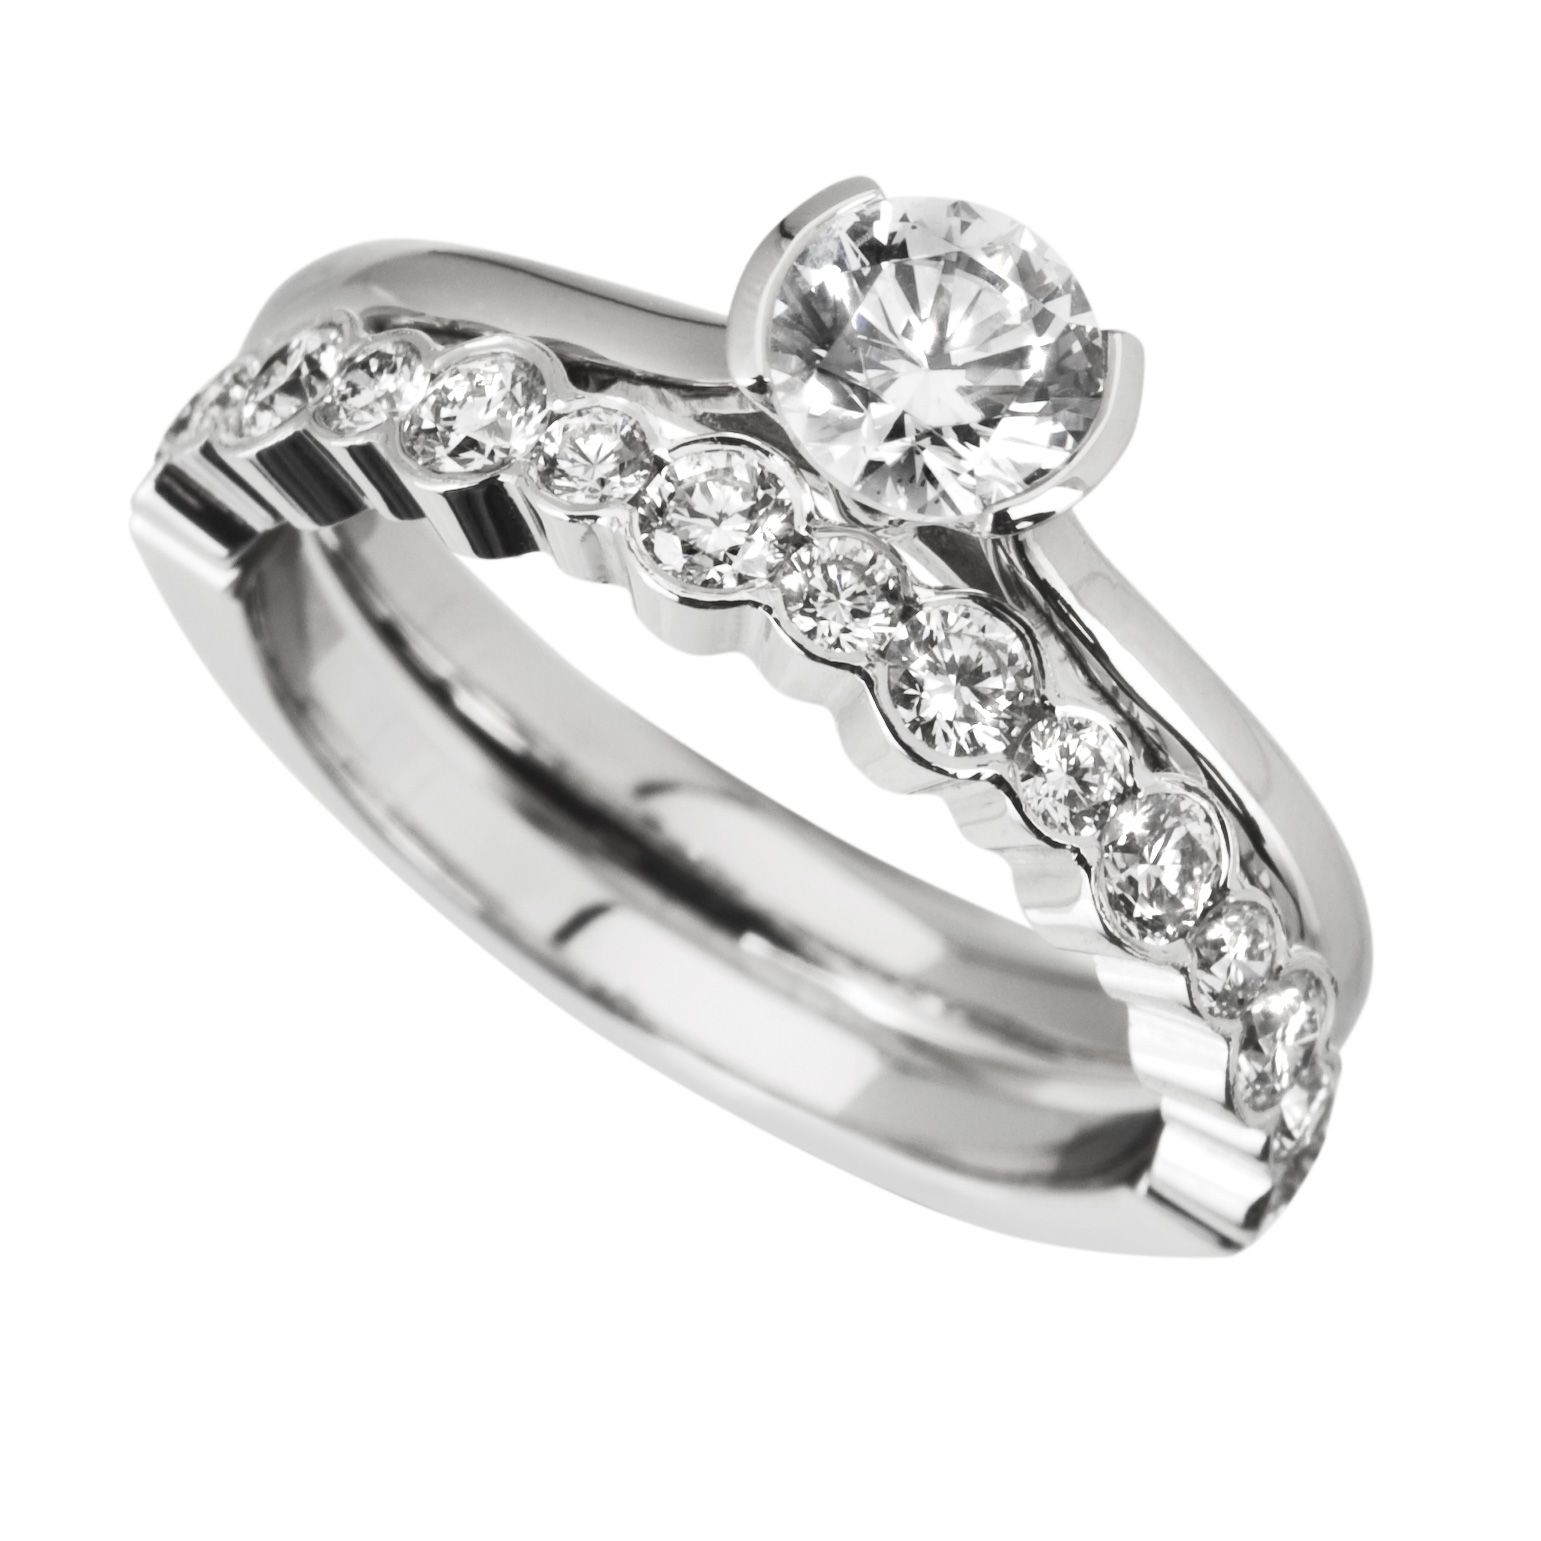 images of wedding rings sets rub over engagement ring with matching diamond - Engagement Wedding Ring Sets